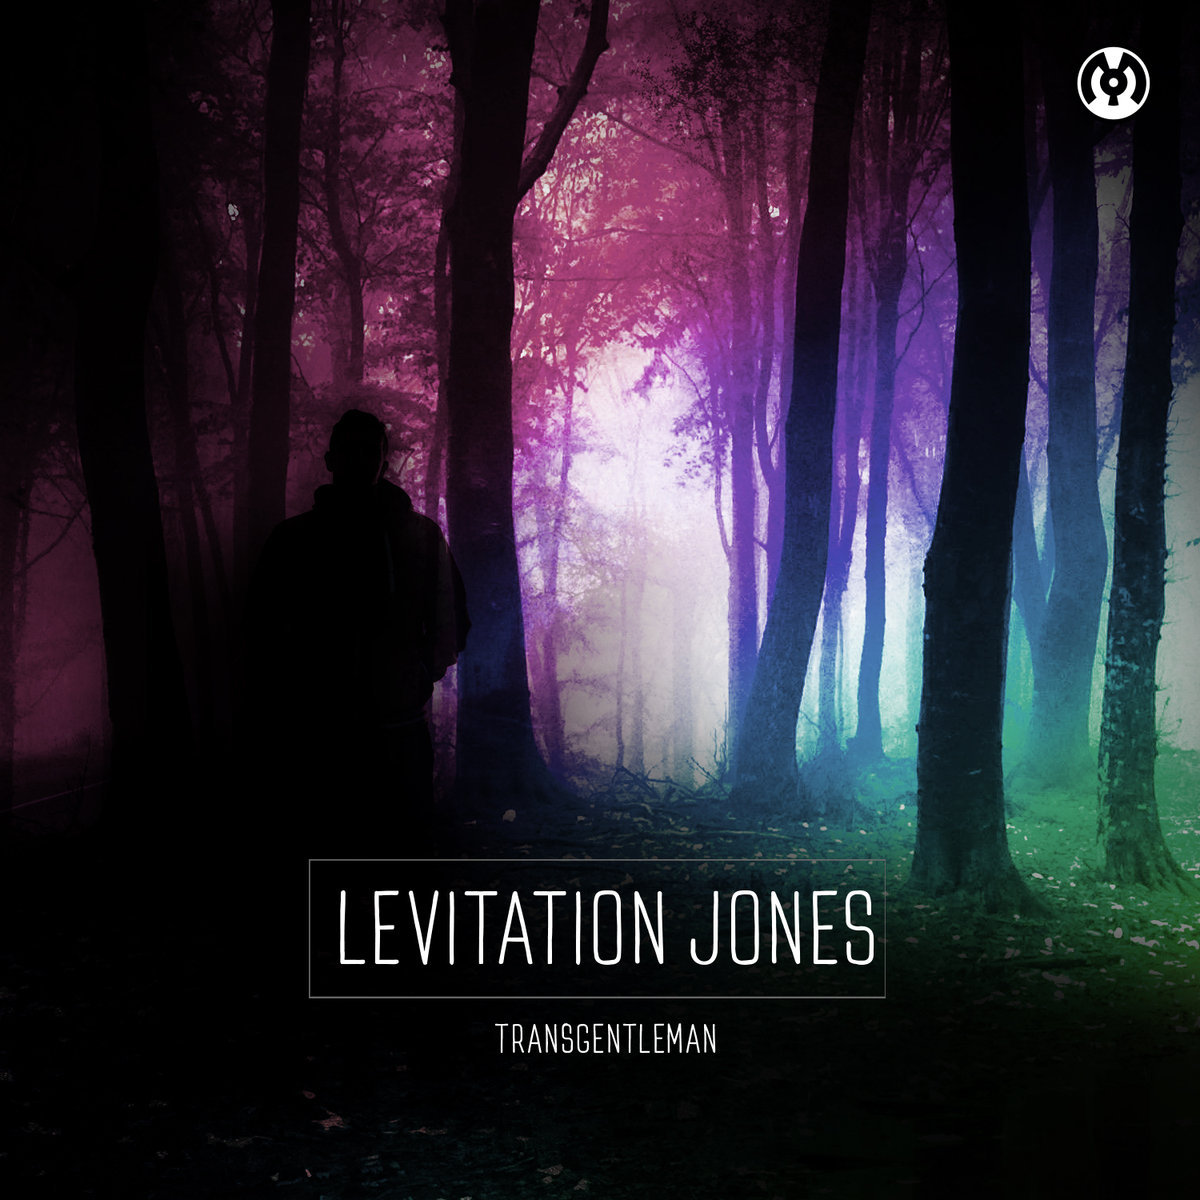 Levitation Jones - See @ 'Transgentleman' album (electronic, dubstep)